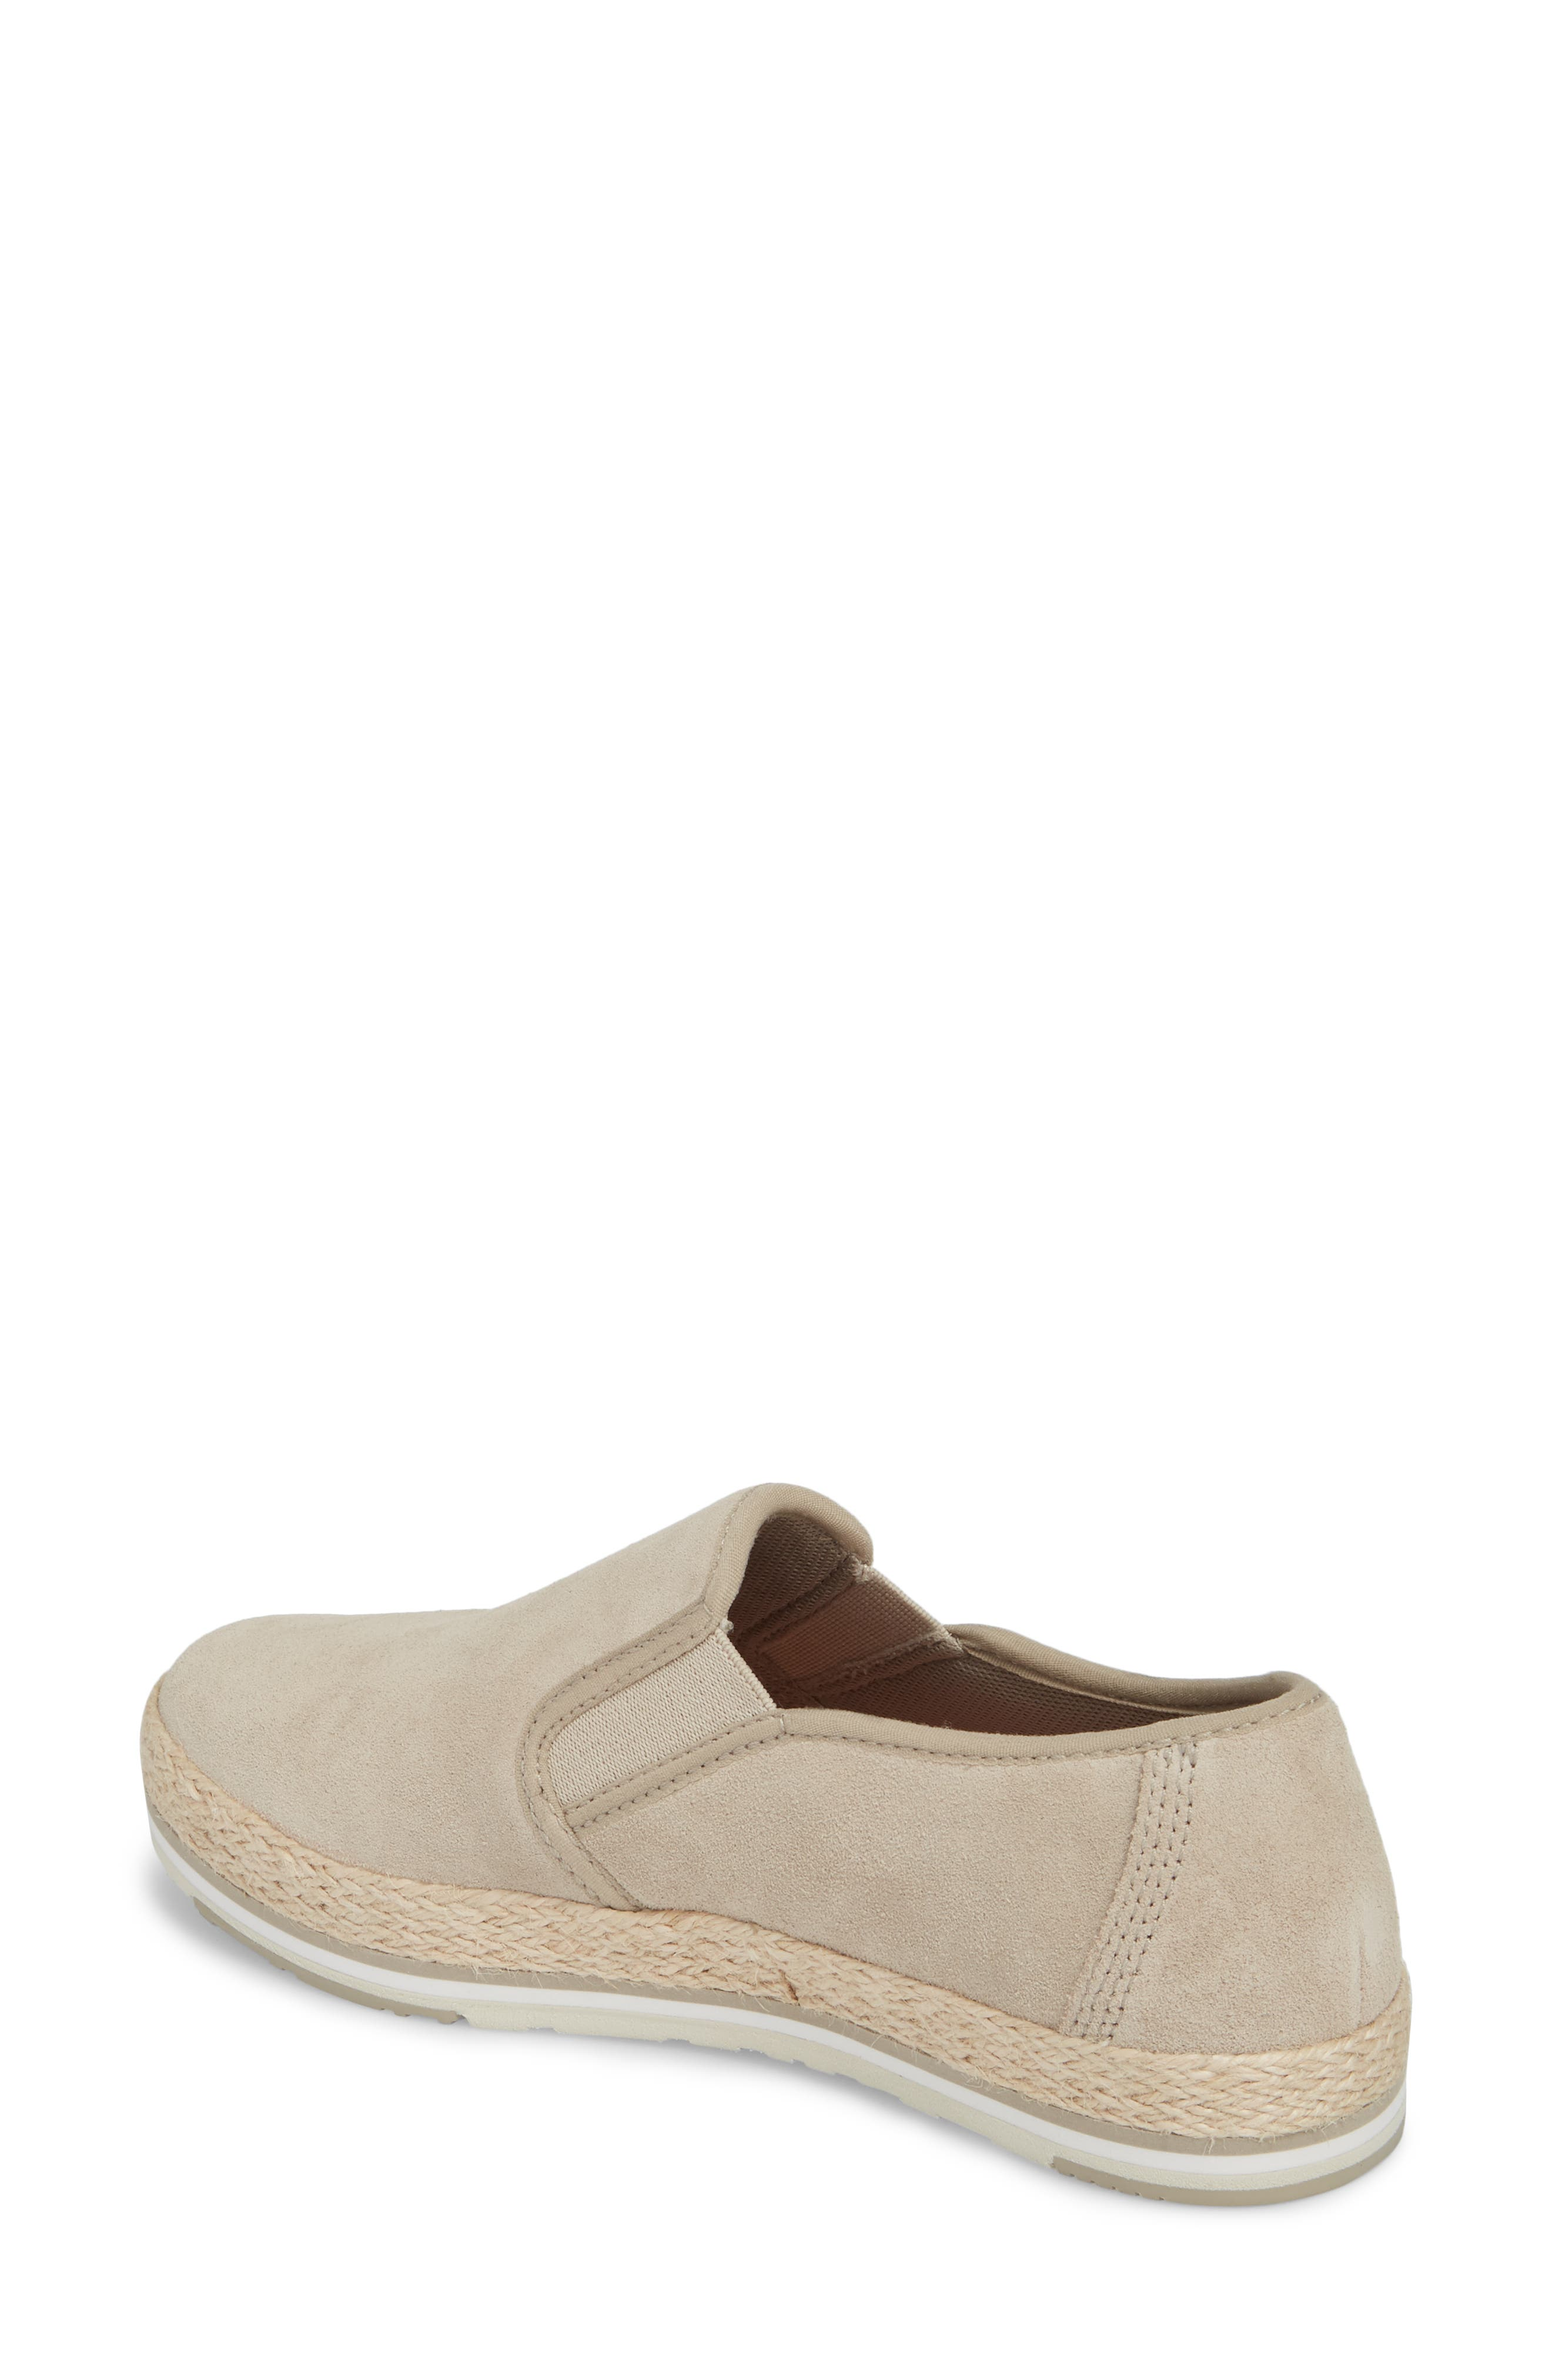 Eivissa Sea Slip-On Sneaker,                             Alternate thumbnail 2, color,                             LIGHT BEIGE LEATHER